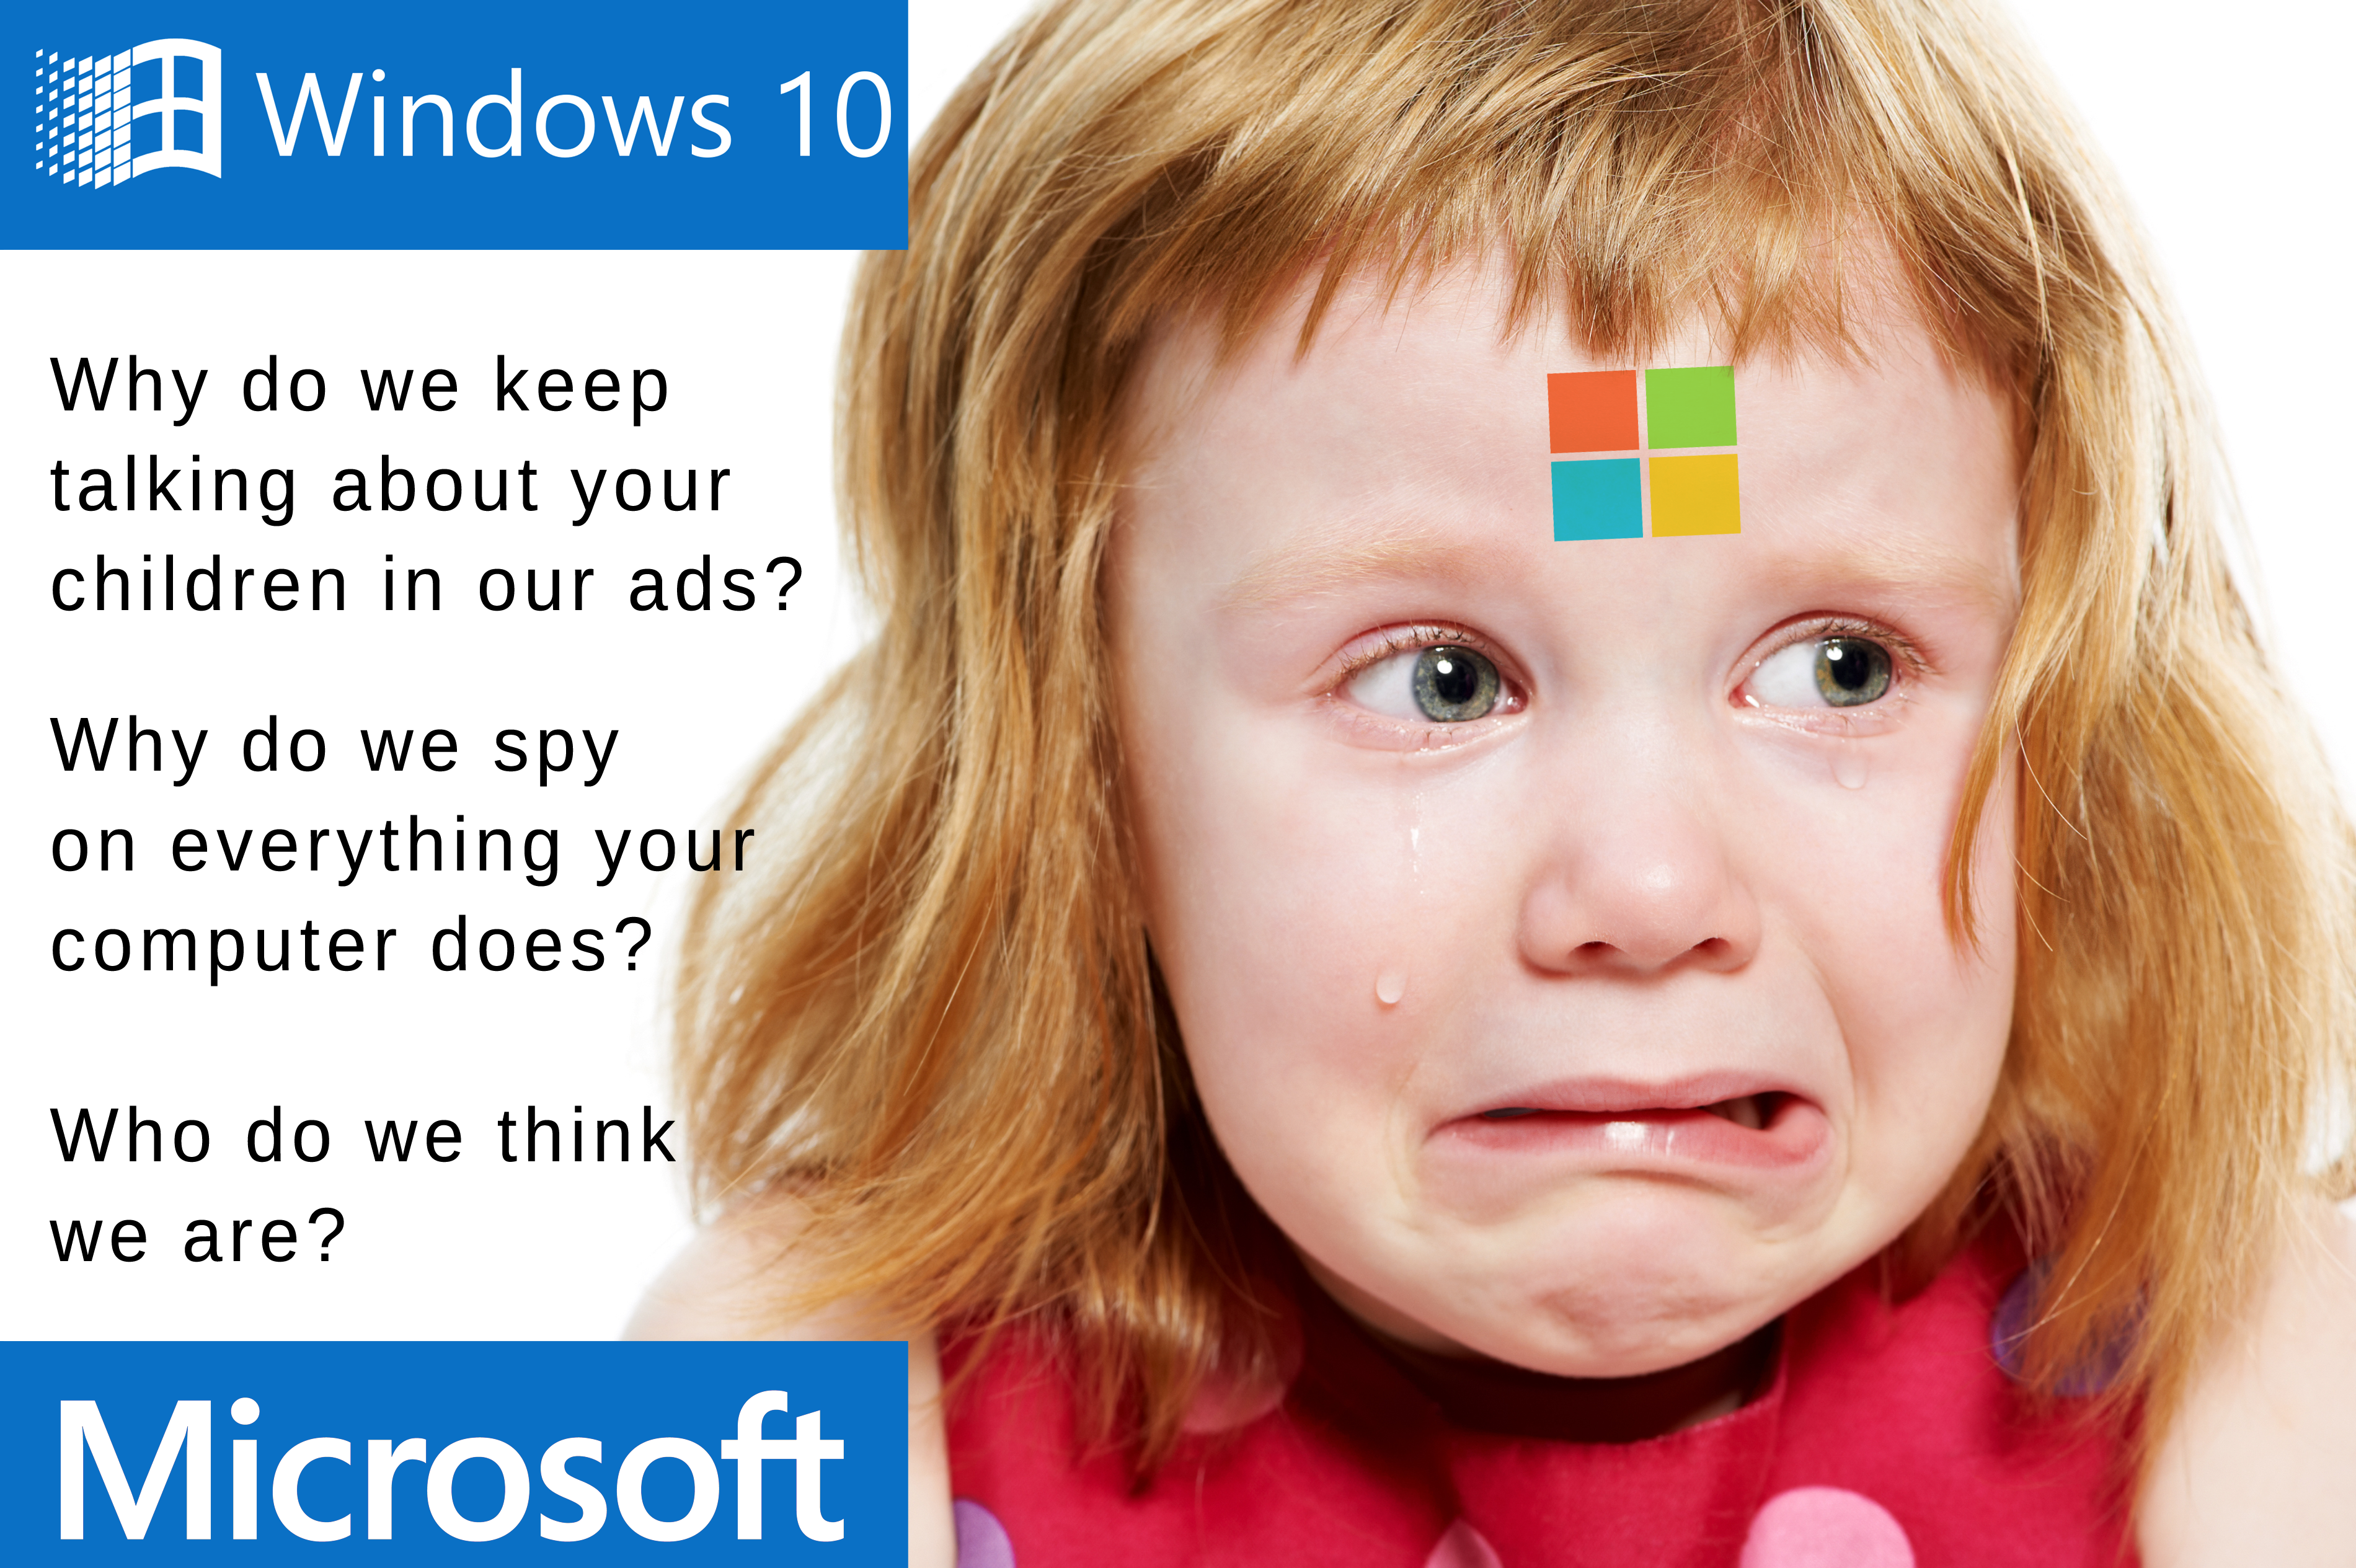 MICROSOFT-10-COMING FOR-YOUR-CHILDREN copy